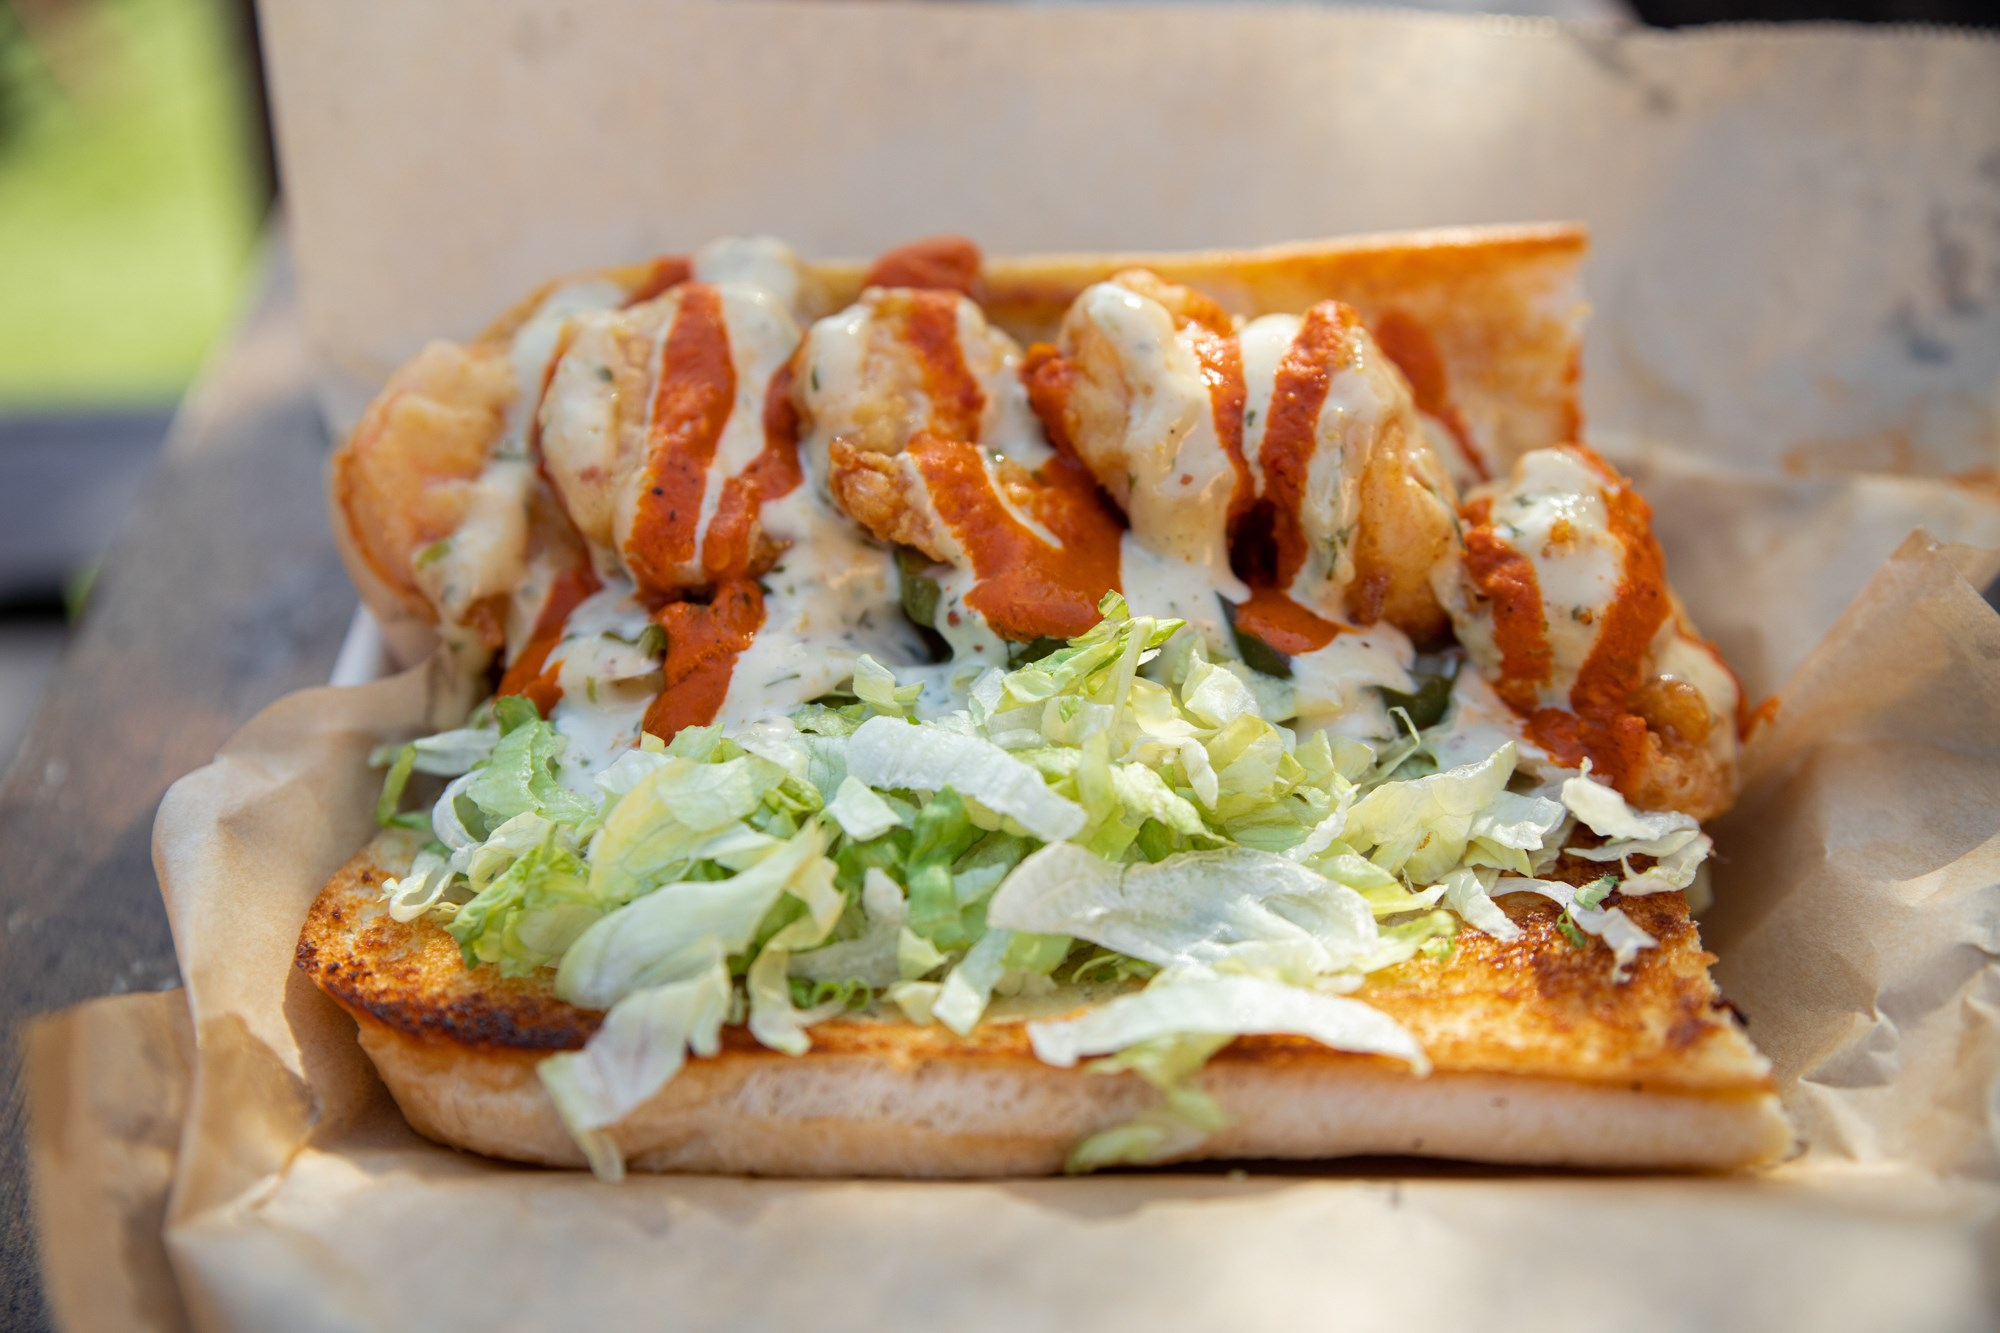 Shrimp Po' Boy comes with lettuce, pickles, tomatoes, & your choice of sauce, loaded on top of a French roll or Texas toast.